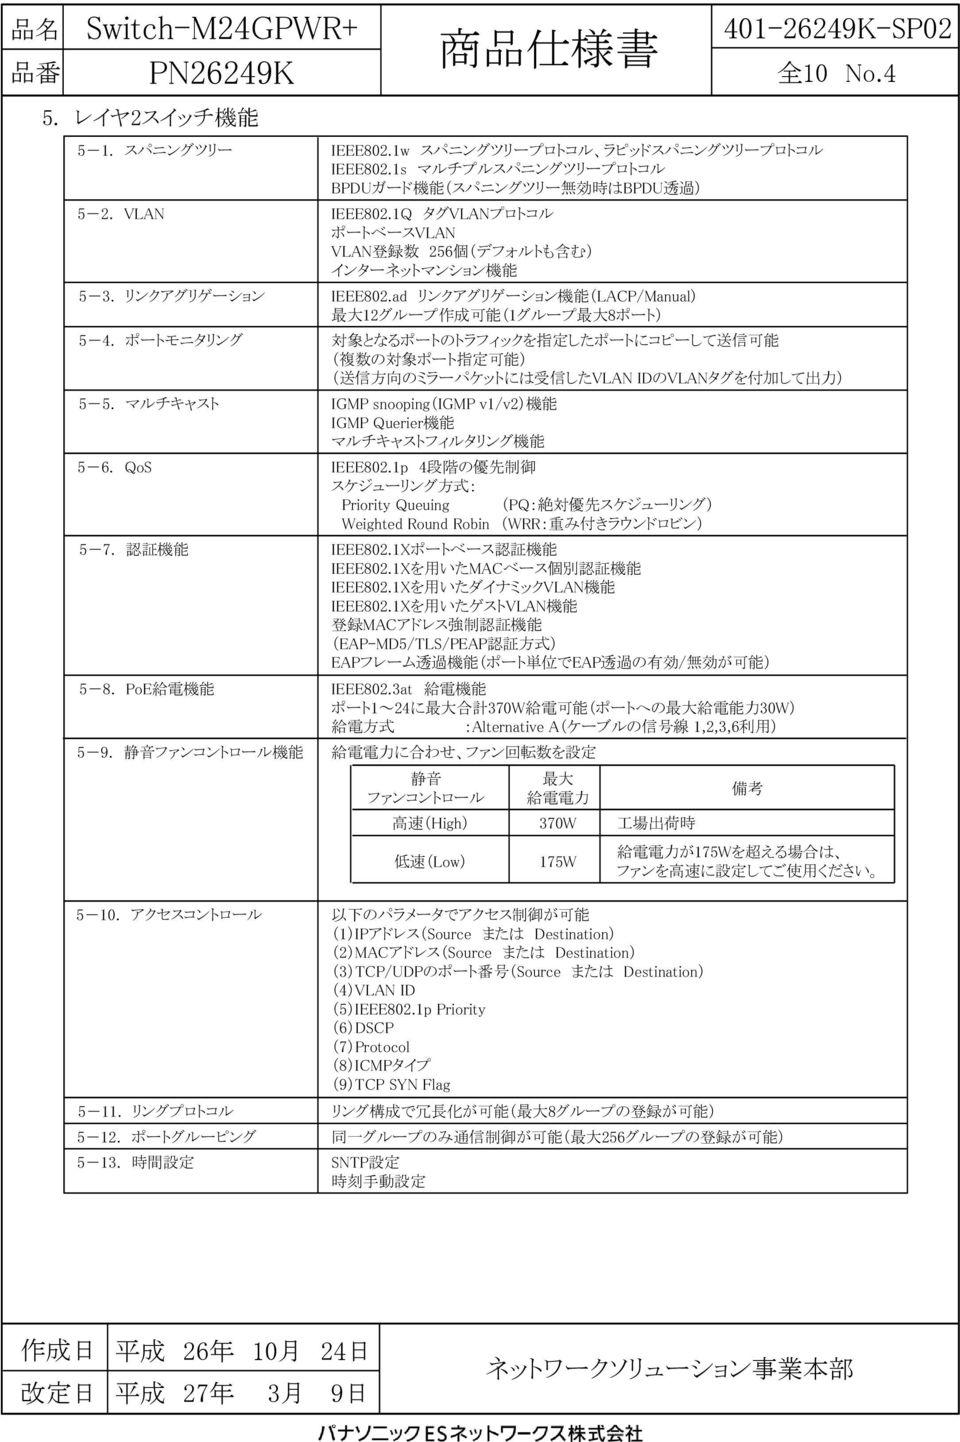 1p Priority (6)DSCP (7)Protocol (8)ICMPタイプ (9)TCP SYN Flag 5-11. リングプロトコル リング 構 成 で 冗 長 化 が 可 能 ( 最 大 8グループの 登 録 が 可 能 ) 5-12. ポートグルーピング 同 一 グループのみ 通 信 制 御 が 可 能 ( 最 大 256グループの 登 録 が 可 能 ) 5-13.